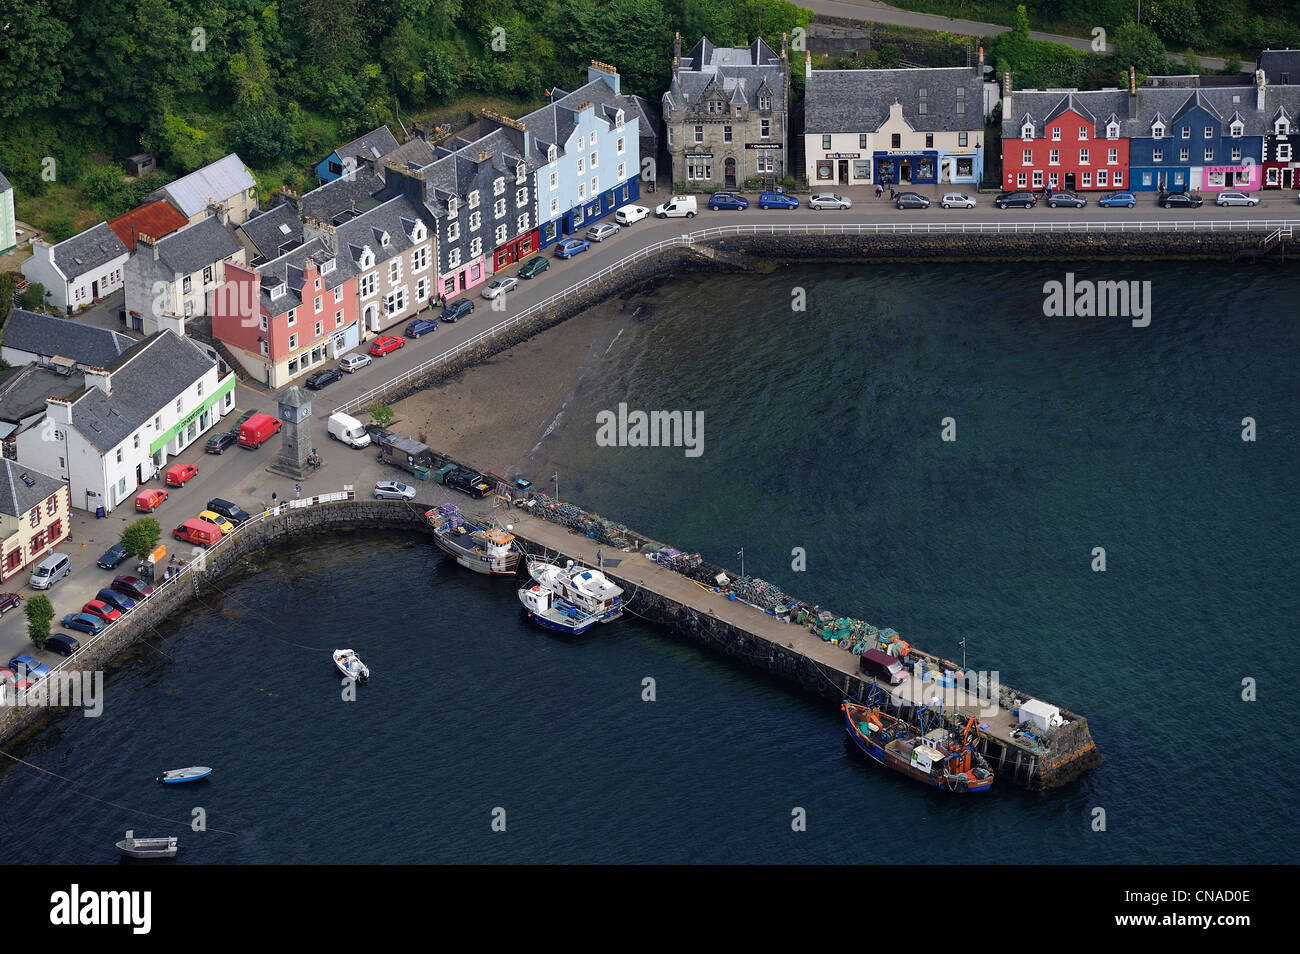 United Kingdom, Scotland, Highland, Inner Hebrides, Isle of Mull, the main town Tobermory and its harbour (aerial - Stock Image